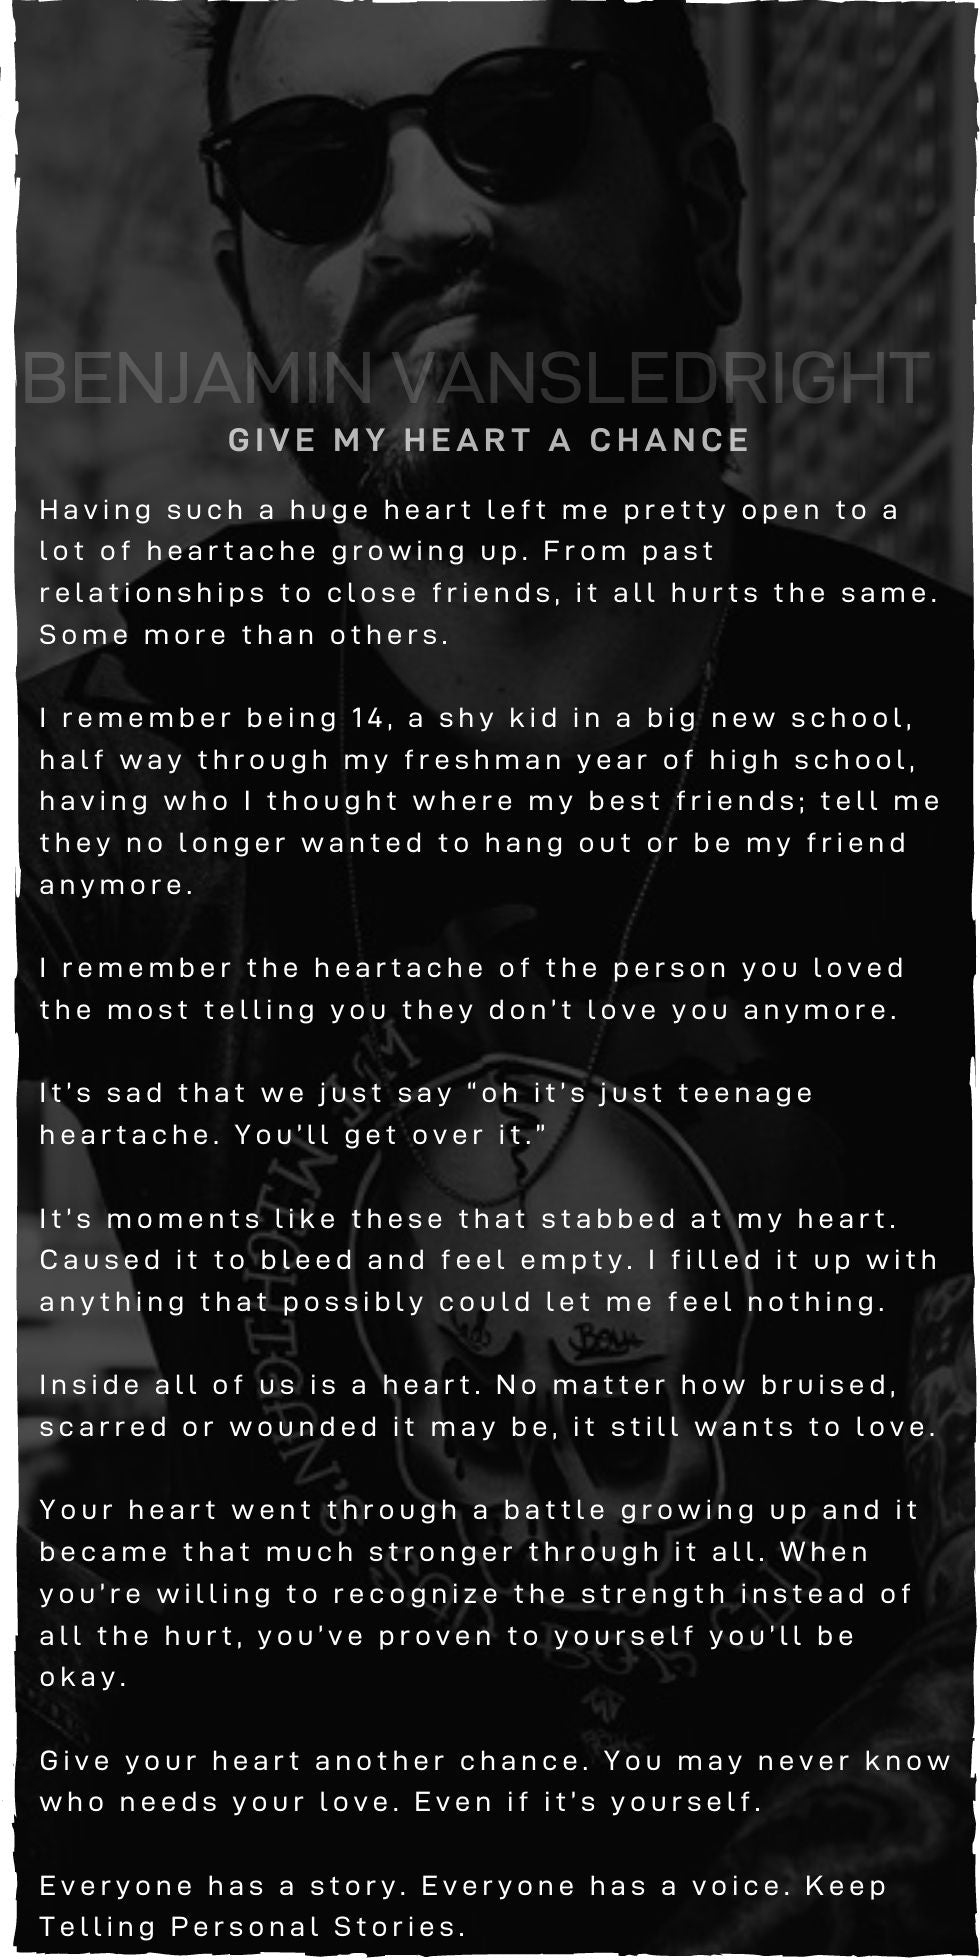 "Having such a huge heart left me pretty open to a lot of heartache growing up. From past relationships to close friends, it all hurts the same. Some more than others.  I remember being 14, a shy kid in a big new school, half way through my freshman year of high school, having who I thought where my best friends; tell me they no longer wanted to hang out or be my friend anymore.  I remember the heartache of the person you loved the most telling you they don't love you anymore.  It's sad that we just say ""oh it's just teenage heartache. You'll get over it.""  It's moments like these that stabbed at my heart. Caused it to bleed and feel empty. I filled it up with anything that possibly could let me feel nothing.  Inside all of us is a heart. No matter how bruised, scarred or wounded it may be, it still wants to love.  Your heart went through a battle growing up and it became that much stronger through it all. When you're willing to recognize the strength instead of all the hurt, you've proven to yourself you'll be okay.  Give your heart another chance. You may never know who needs your love. Even if it's yourself.  Everyone has a story. Everyone has a voice. Keep Telling Personal Stories."